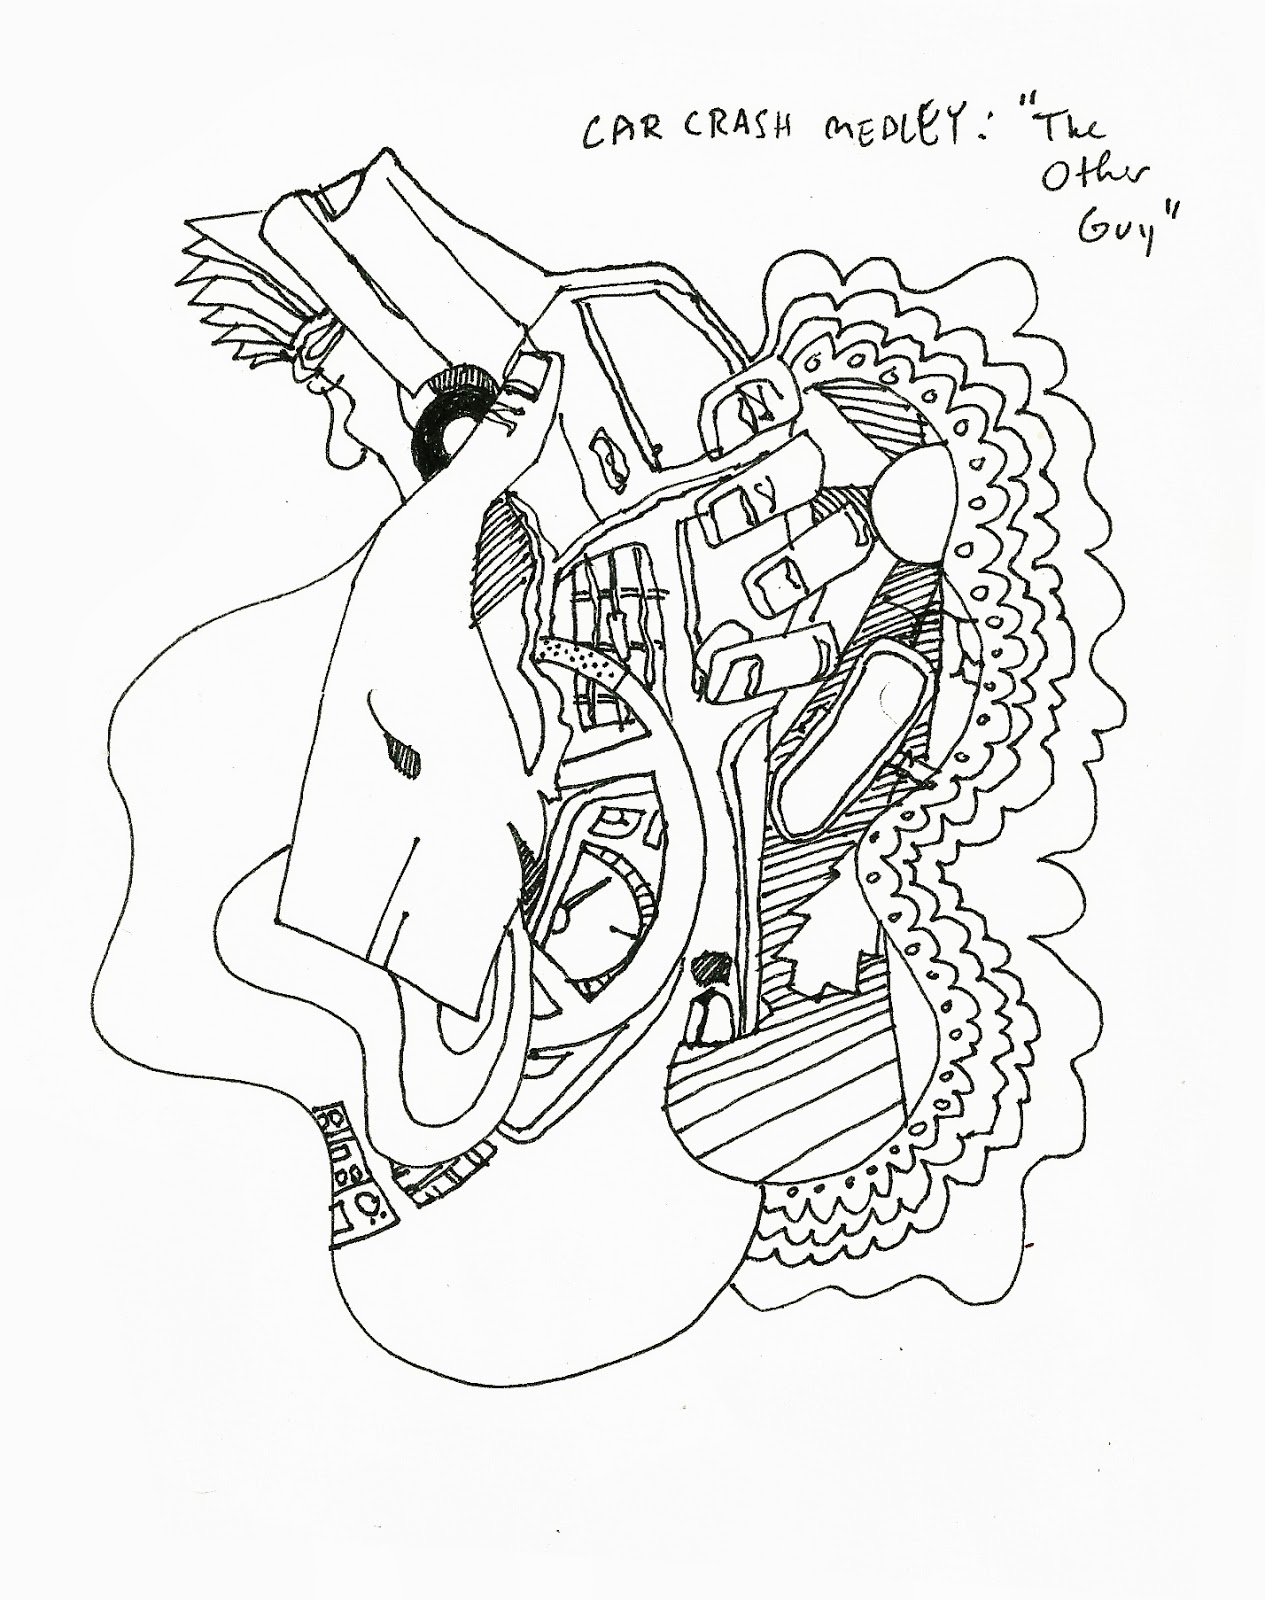 Magnificent Car Crash Sketch Gallery - Electrical System Block ...